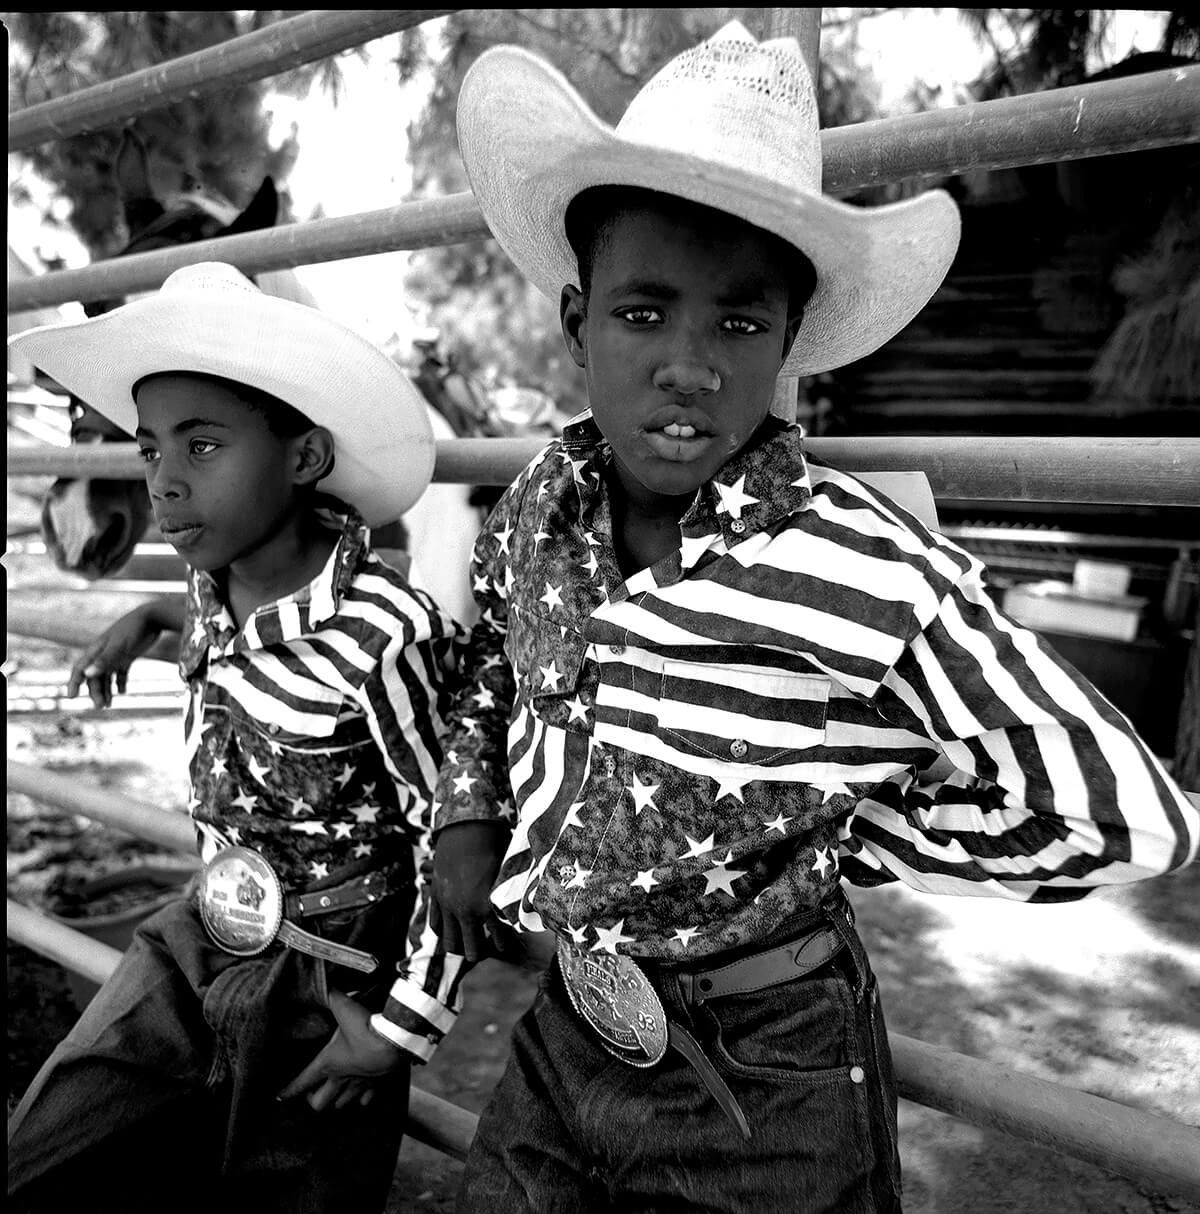 Black Cowboys - Stars and Stripes<p>© Manuello Paganelli</p>